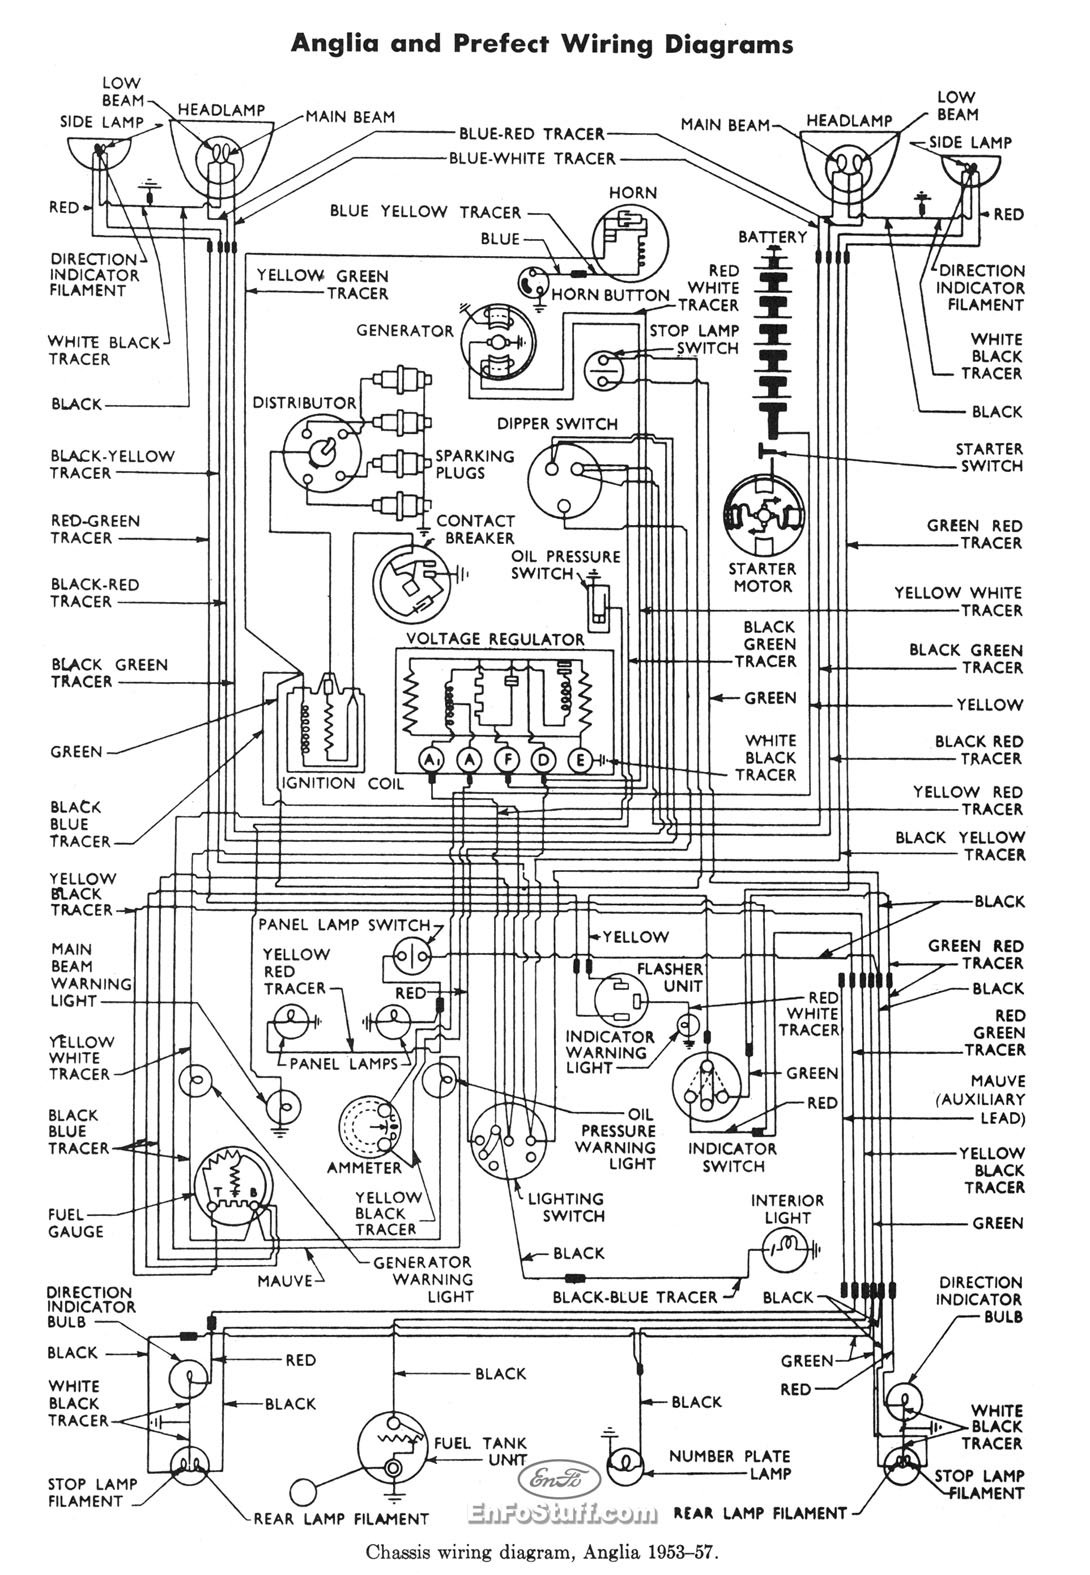 Ford Anglia 1953 57 Wiring Diagram on 1989 silverado frame